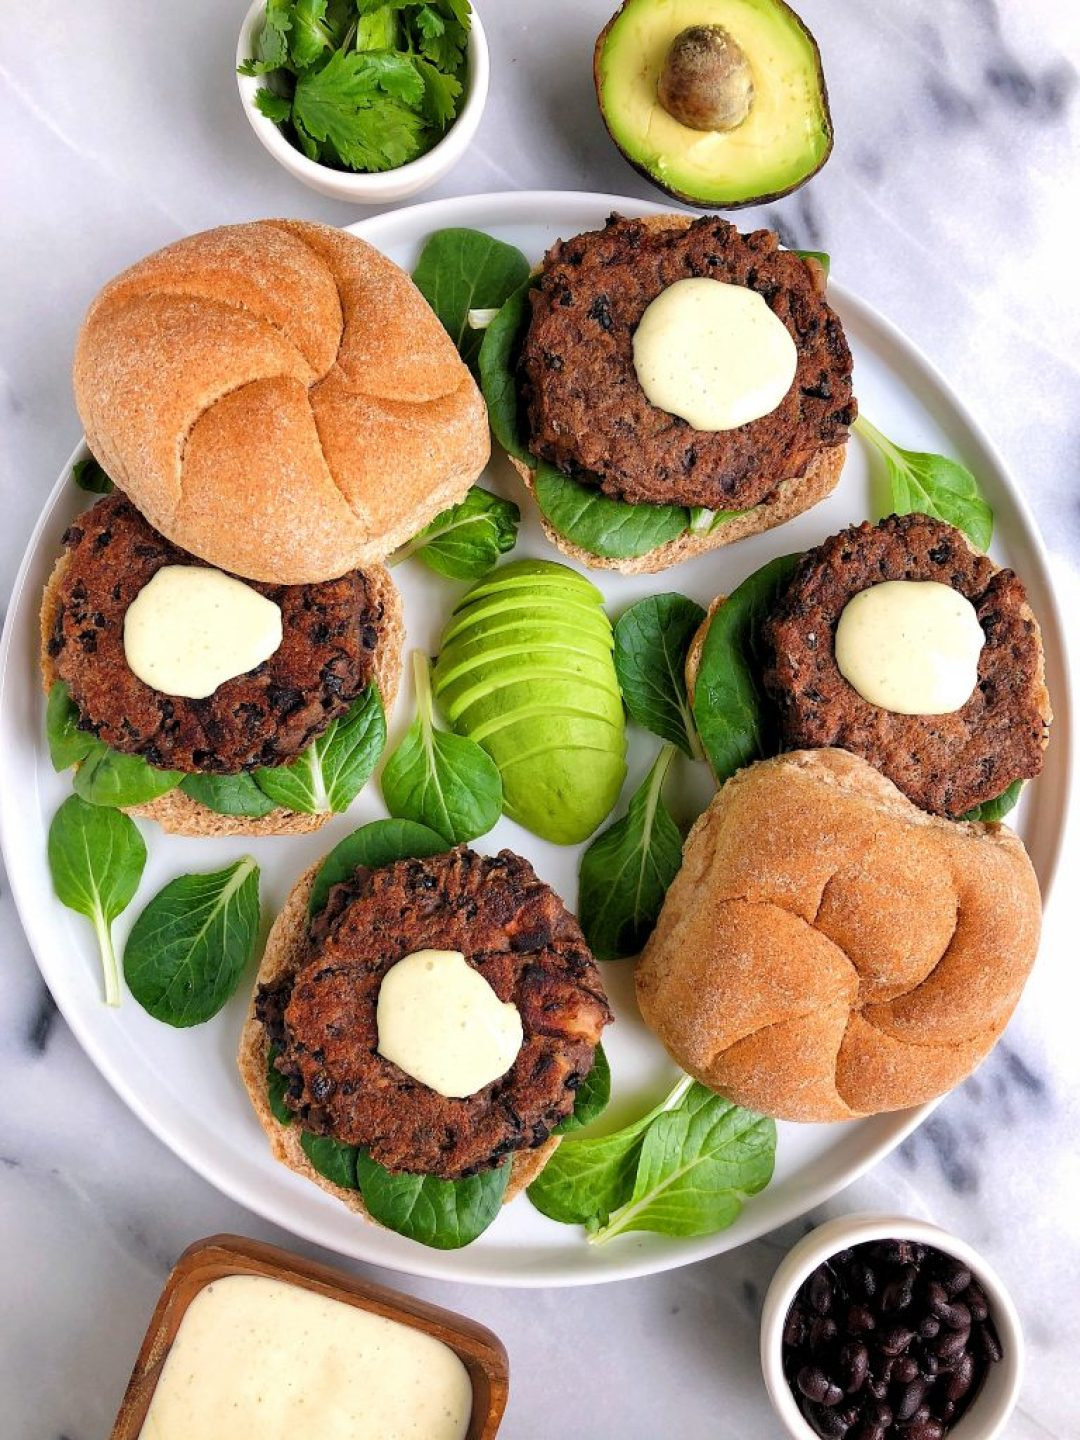 Vegan Black Bean Burgers with Spicy Aioli (gluten-free